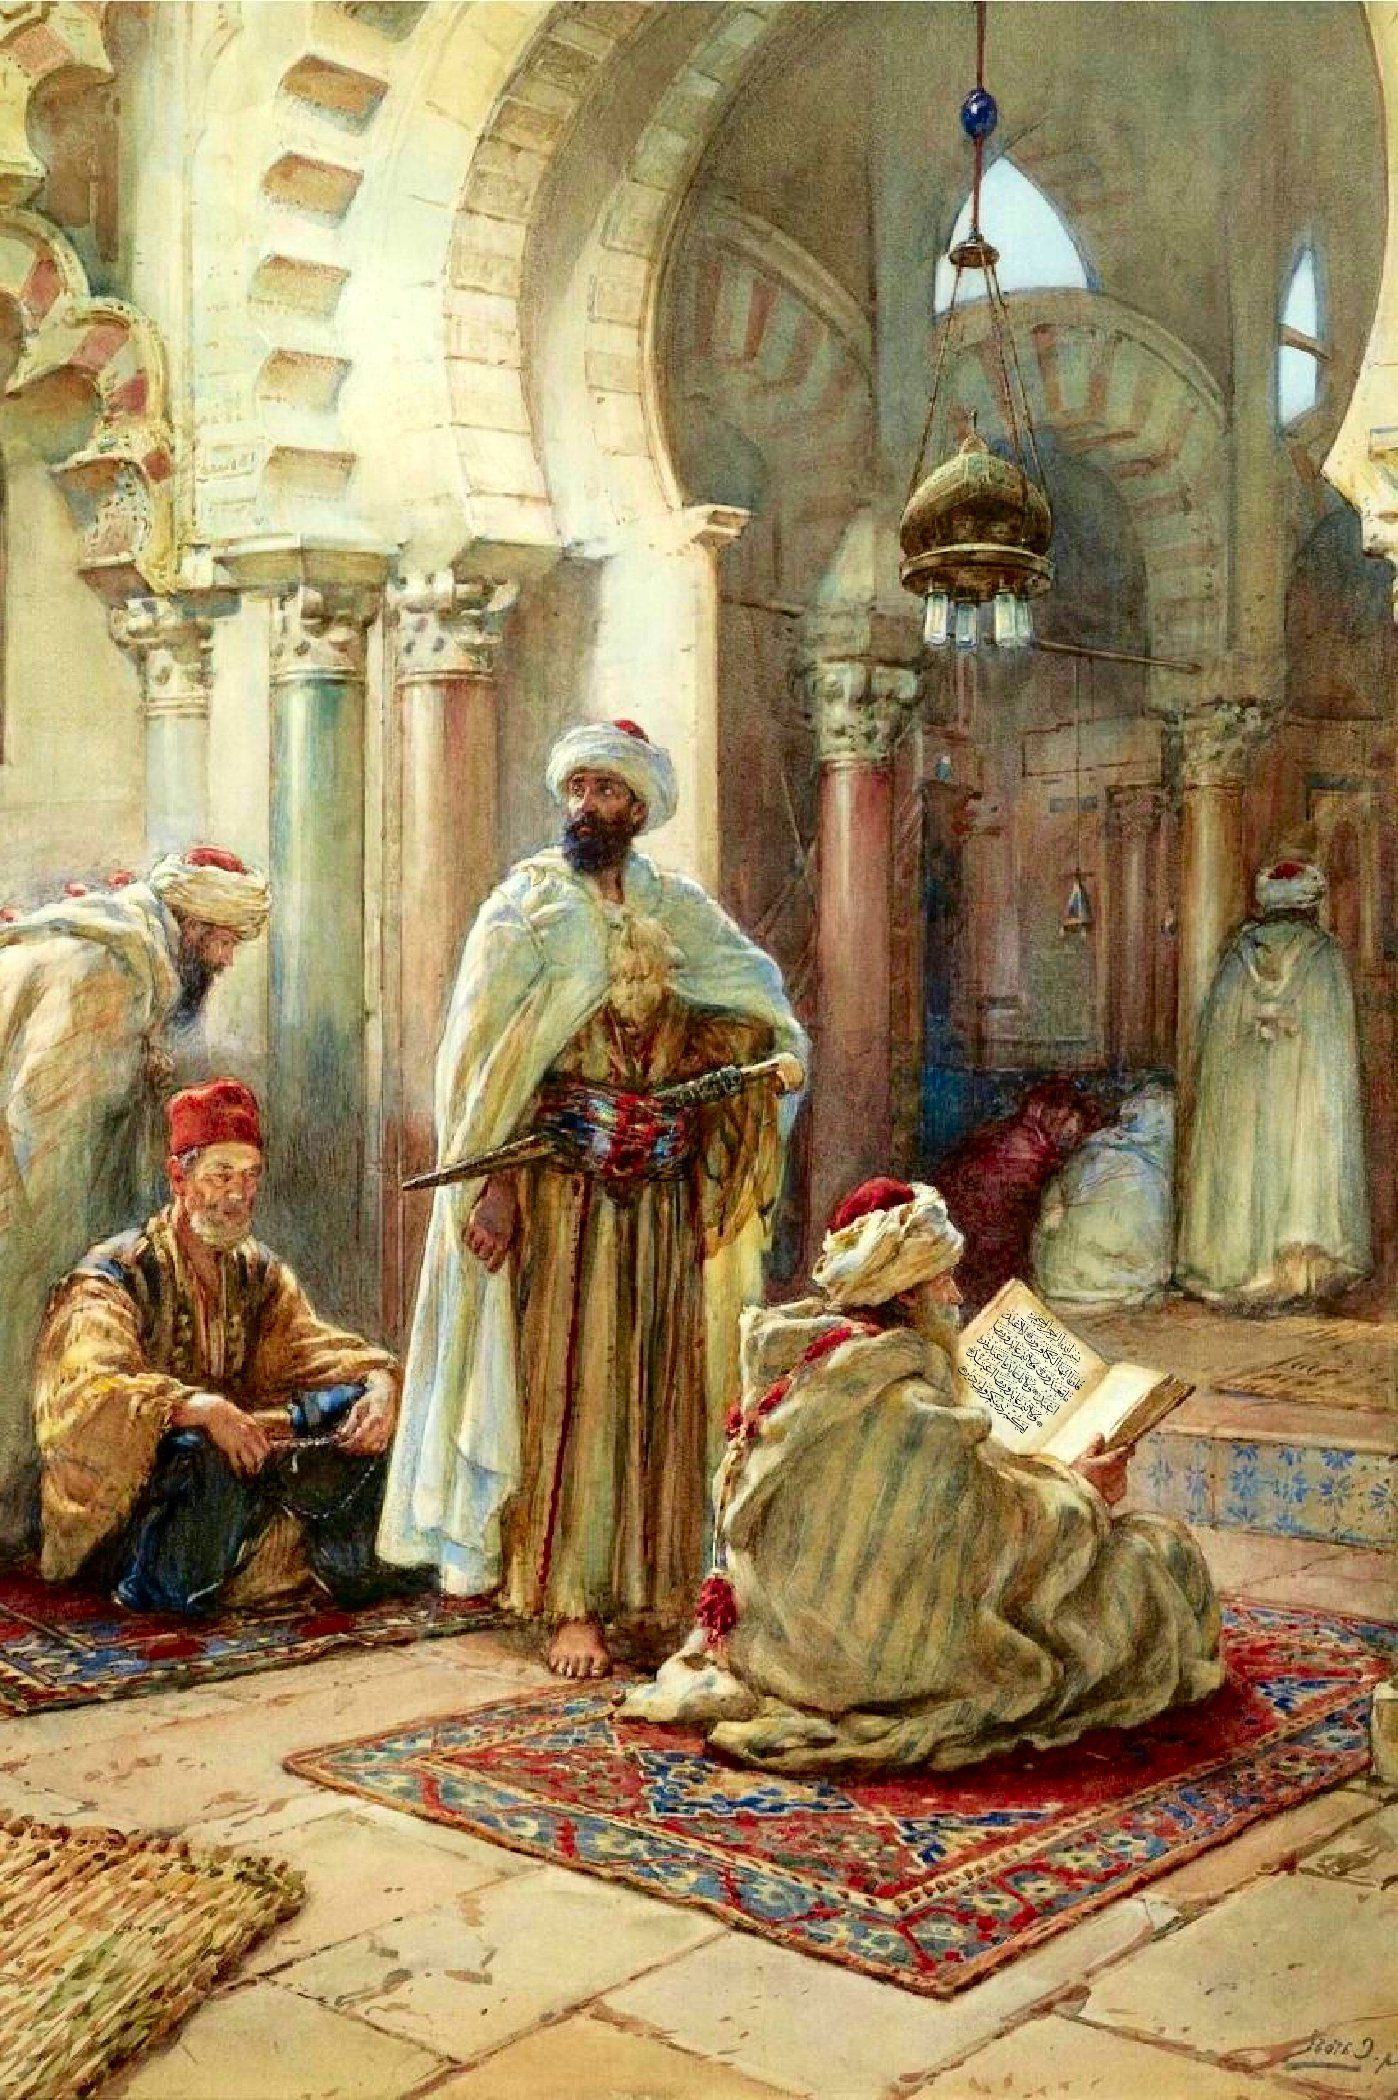 Prayer at the Mosque. Mid 1800s. Apparently North Africa but ...